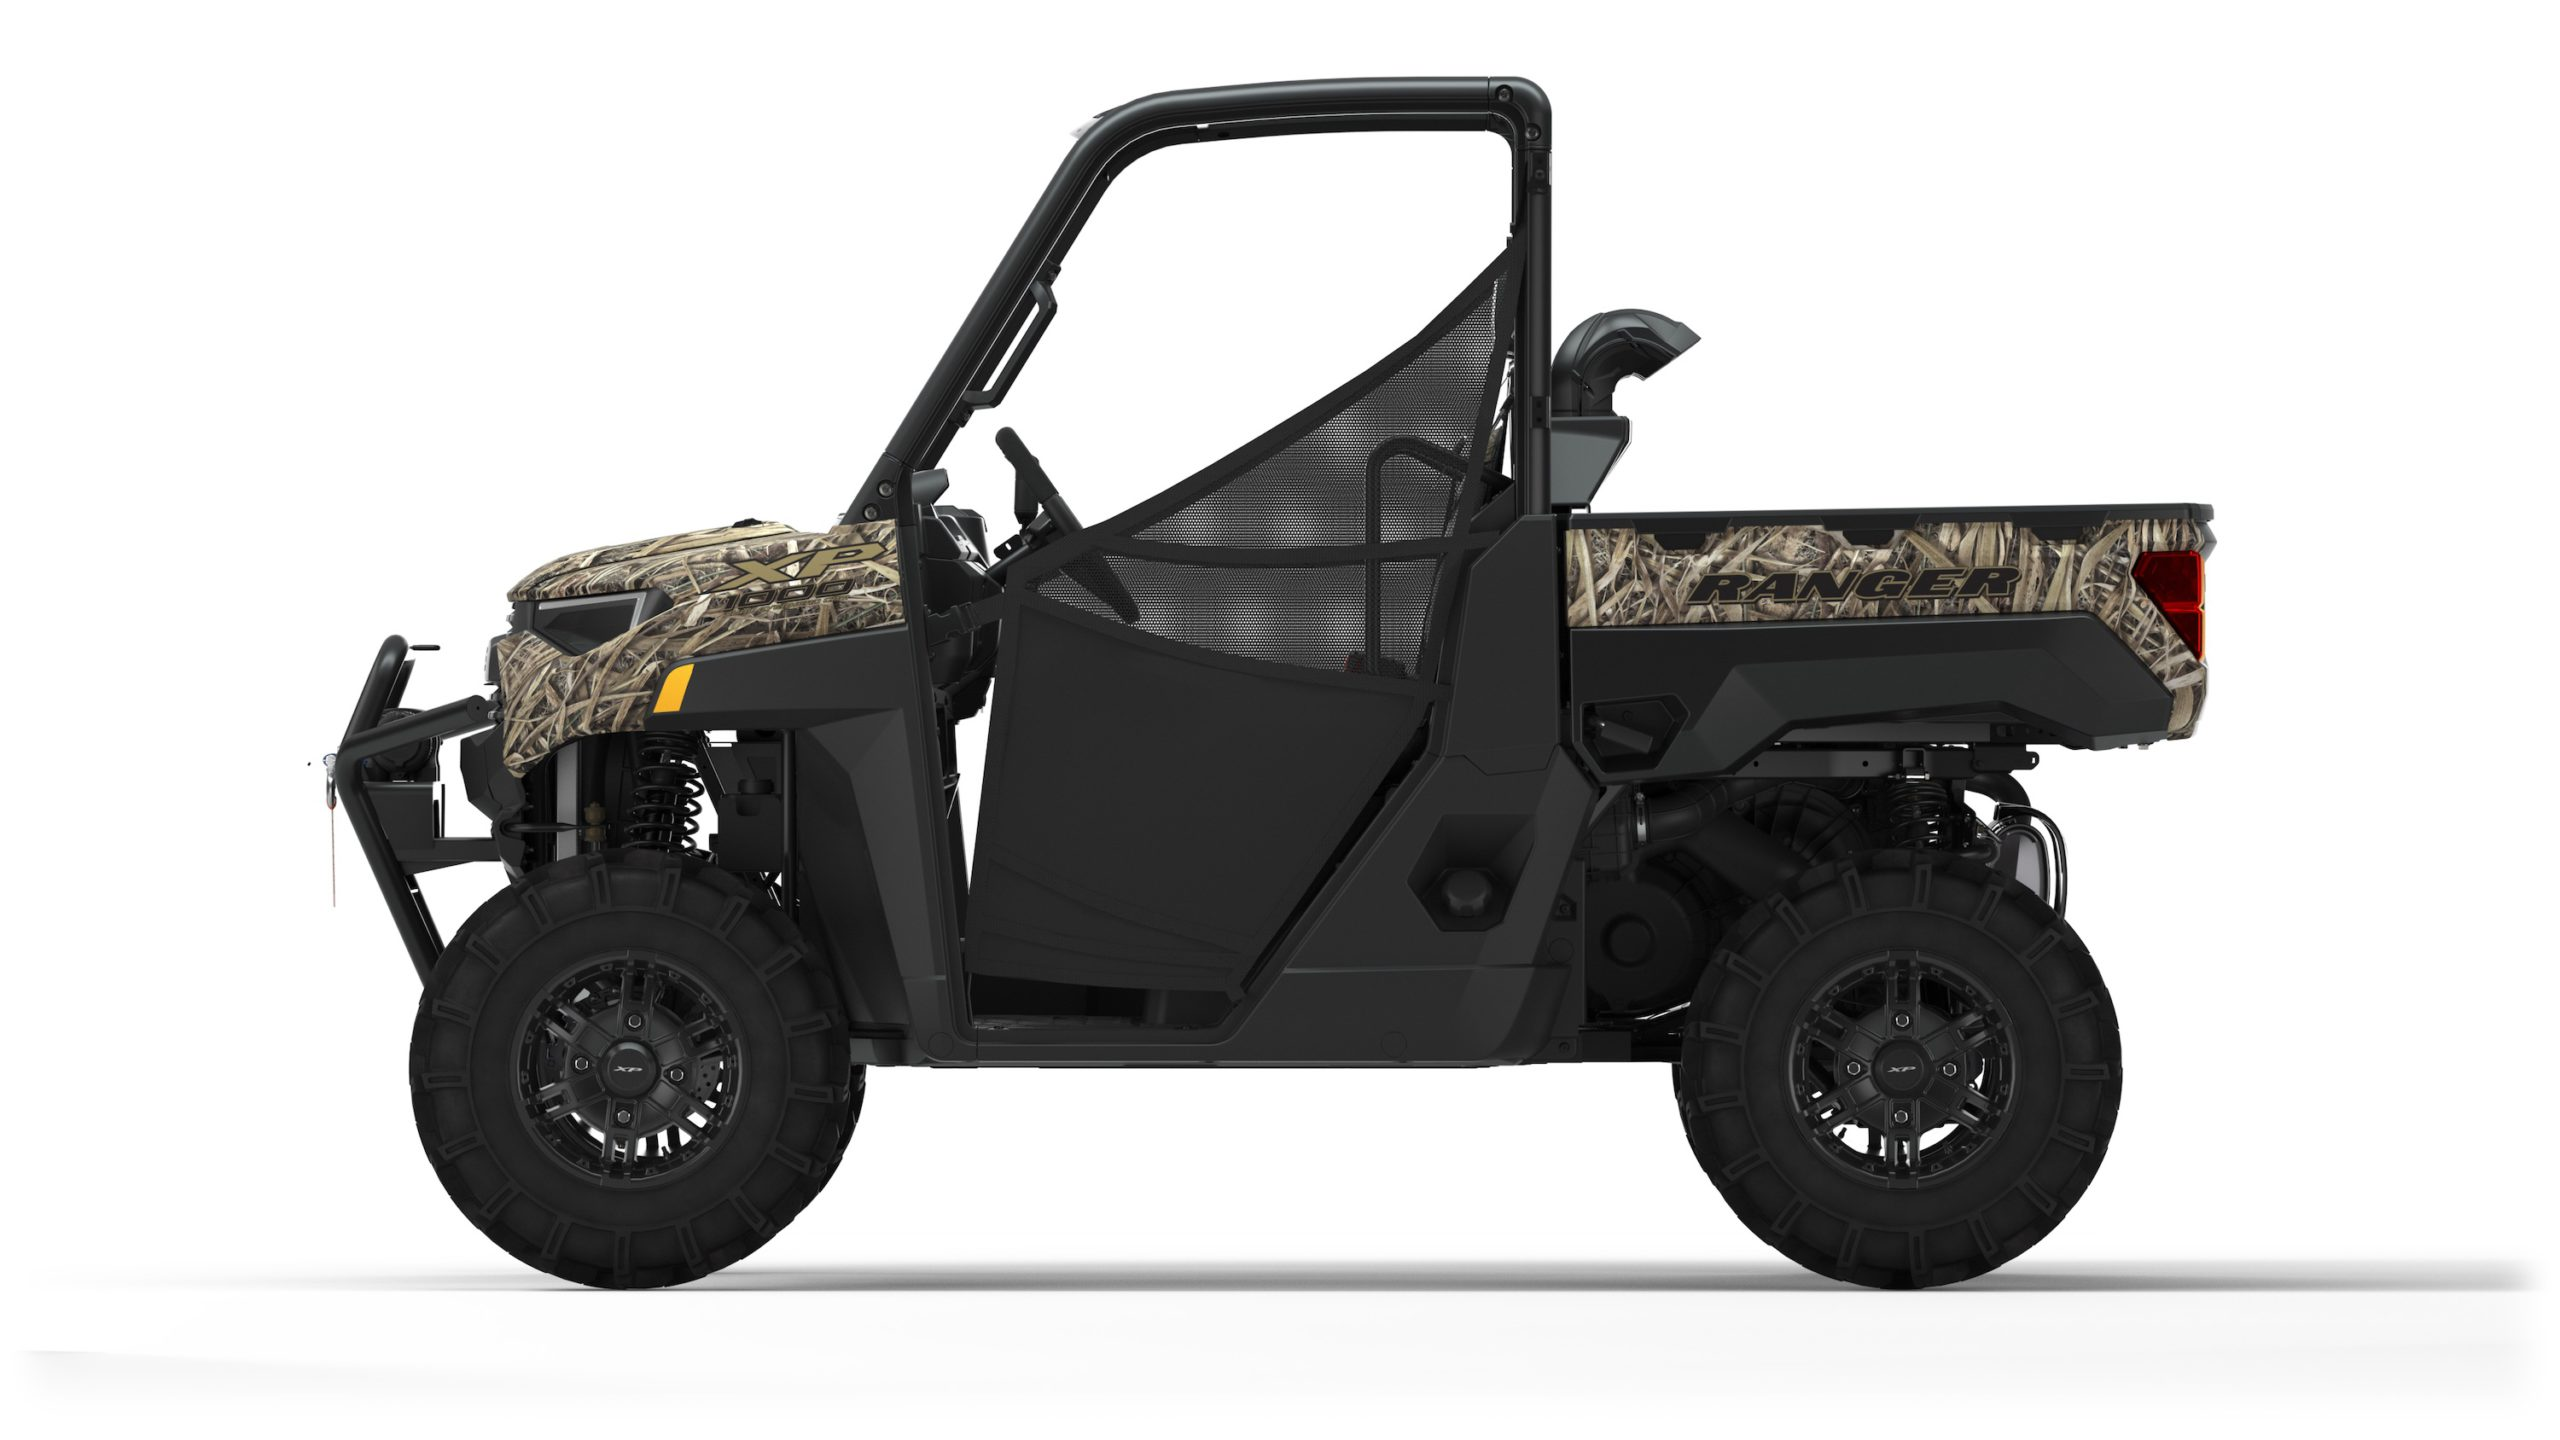 The Ranger XP 1000 Waterfowl Edition